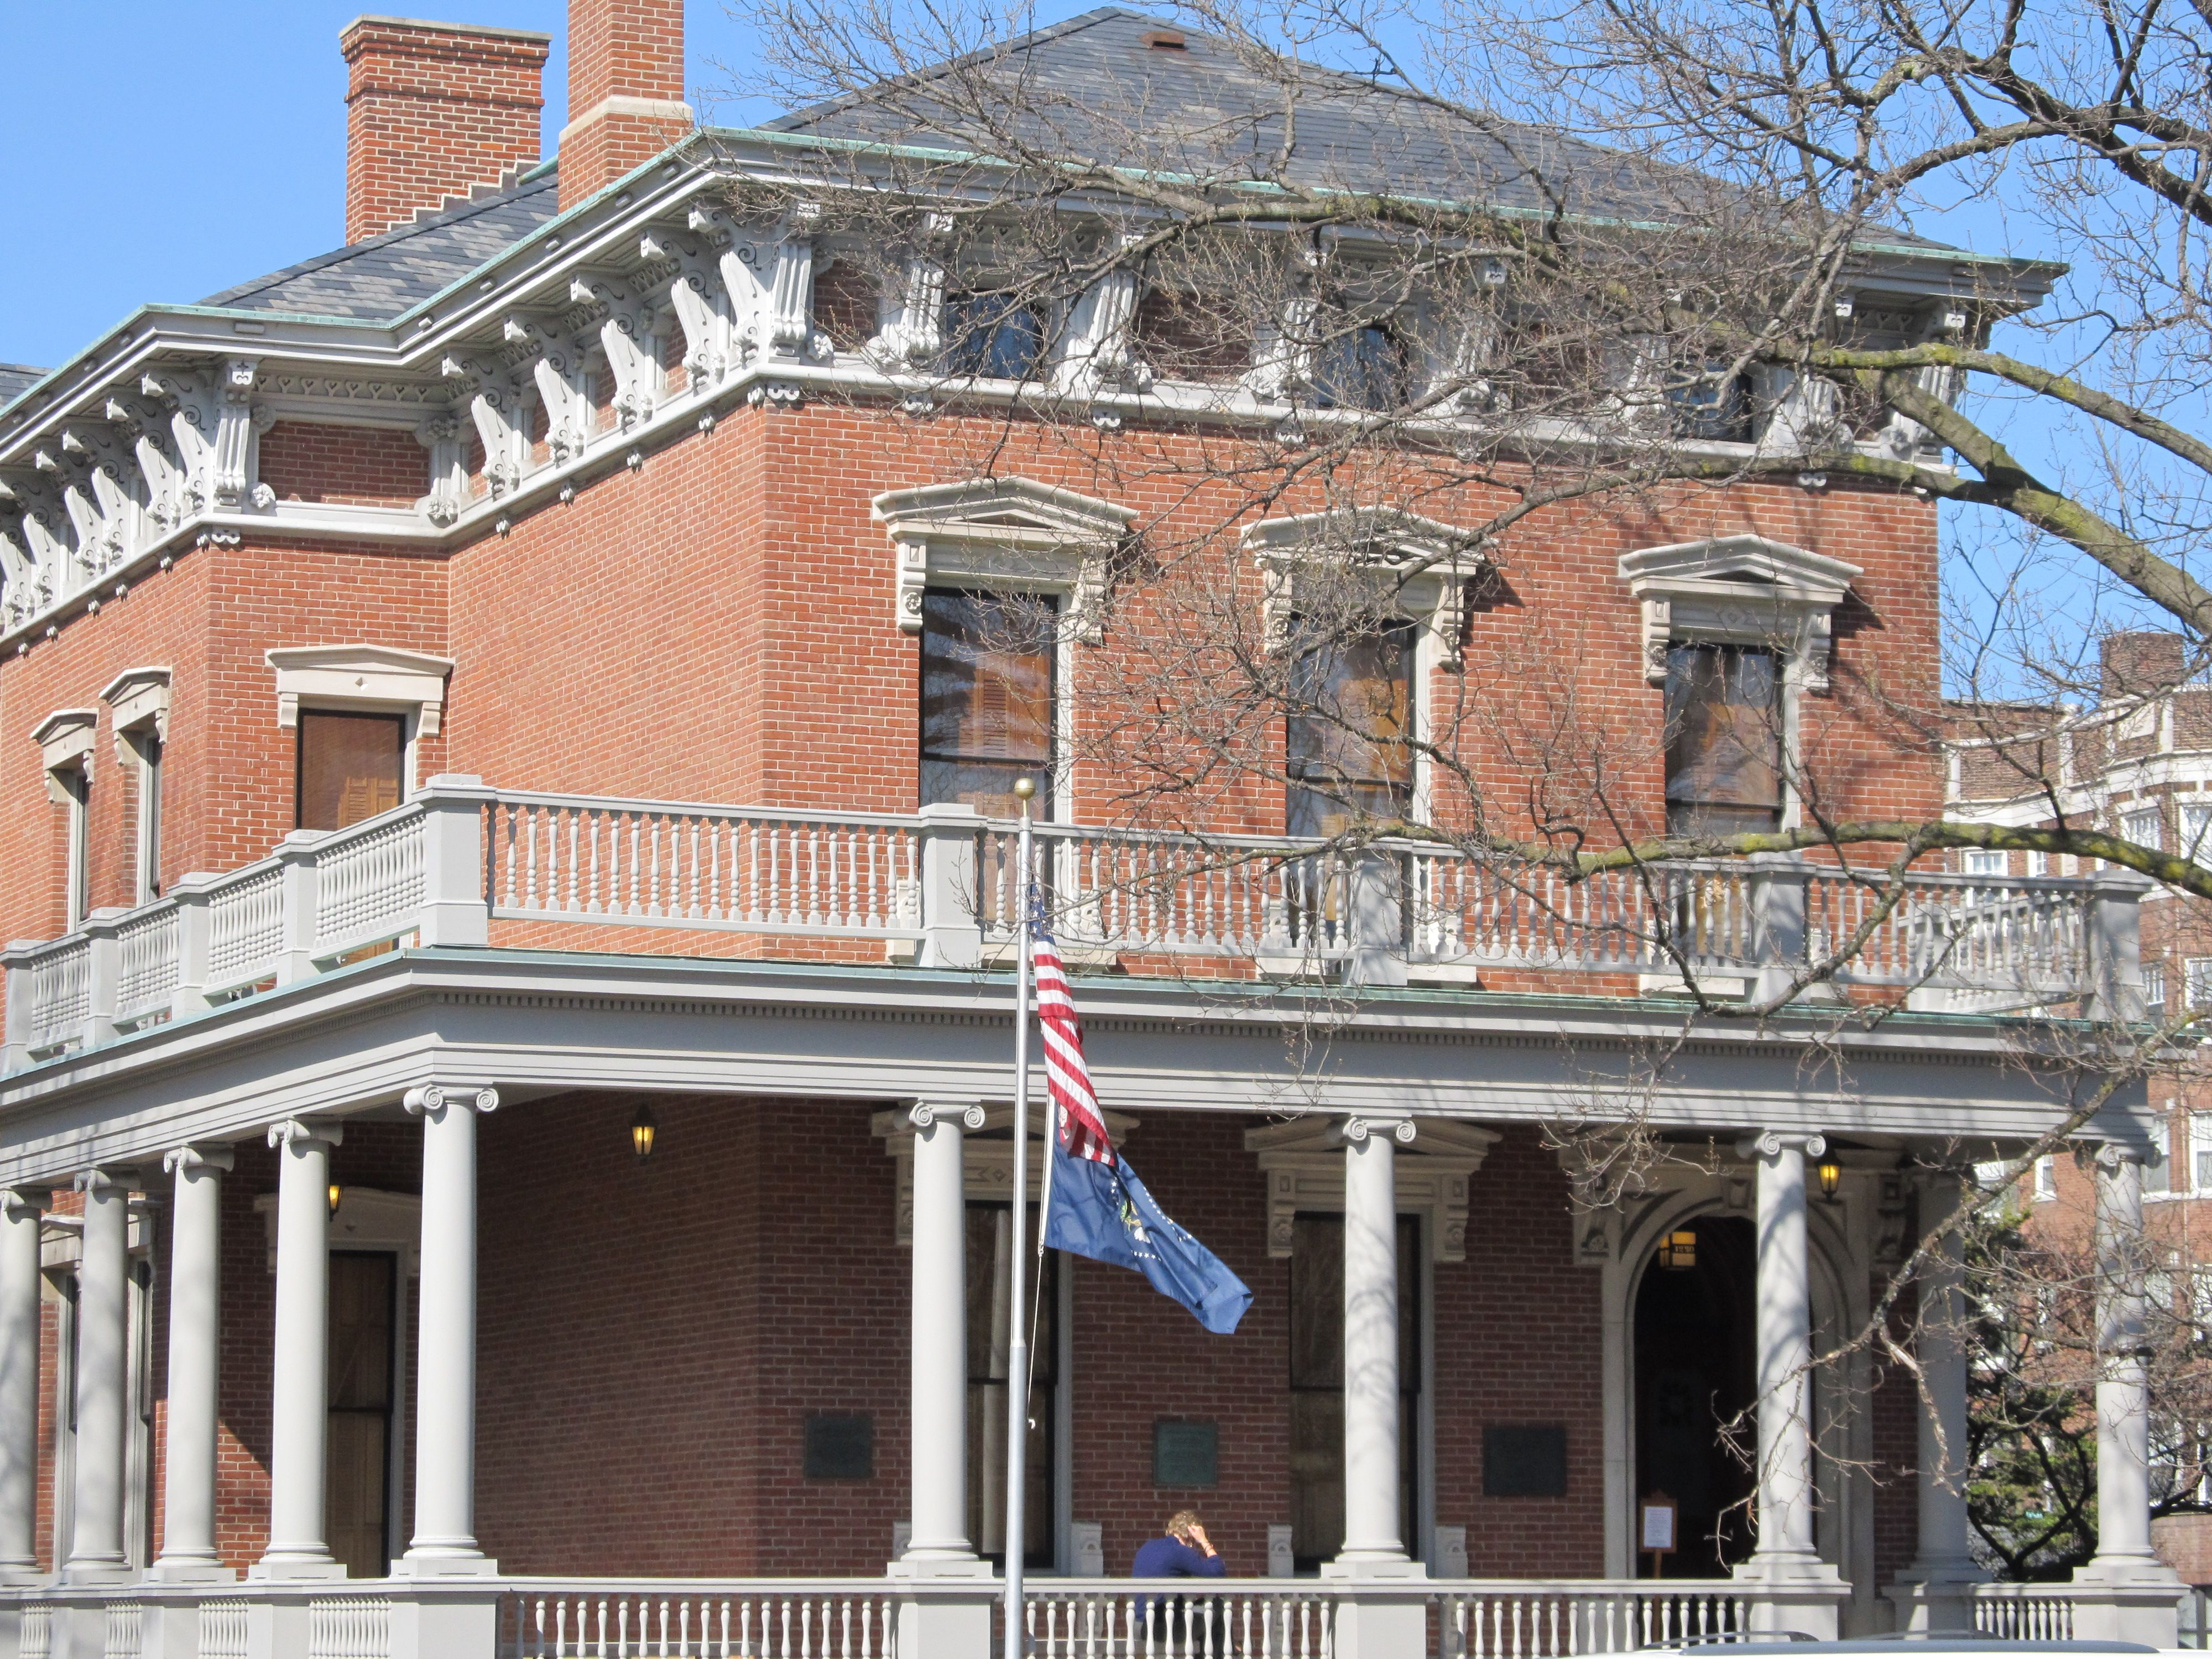 The Benjamin Harrison house in Indianapolis, IN. Lots of ...  Benjamin Harrison House